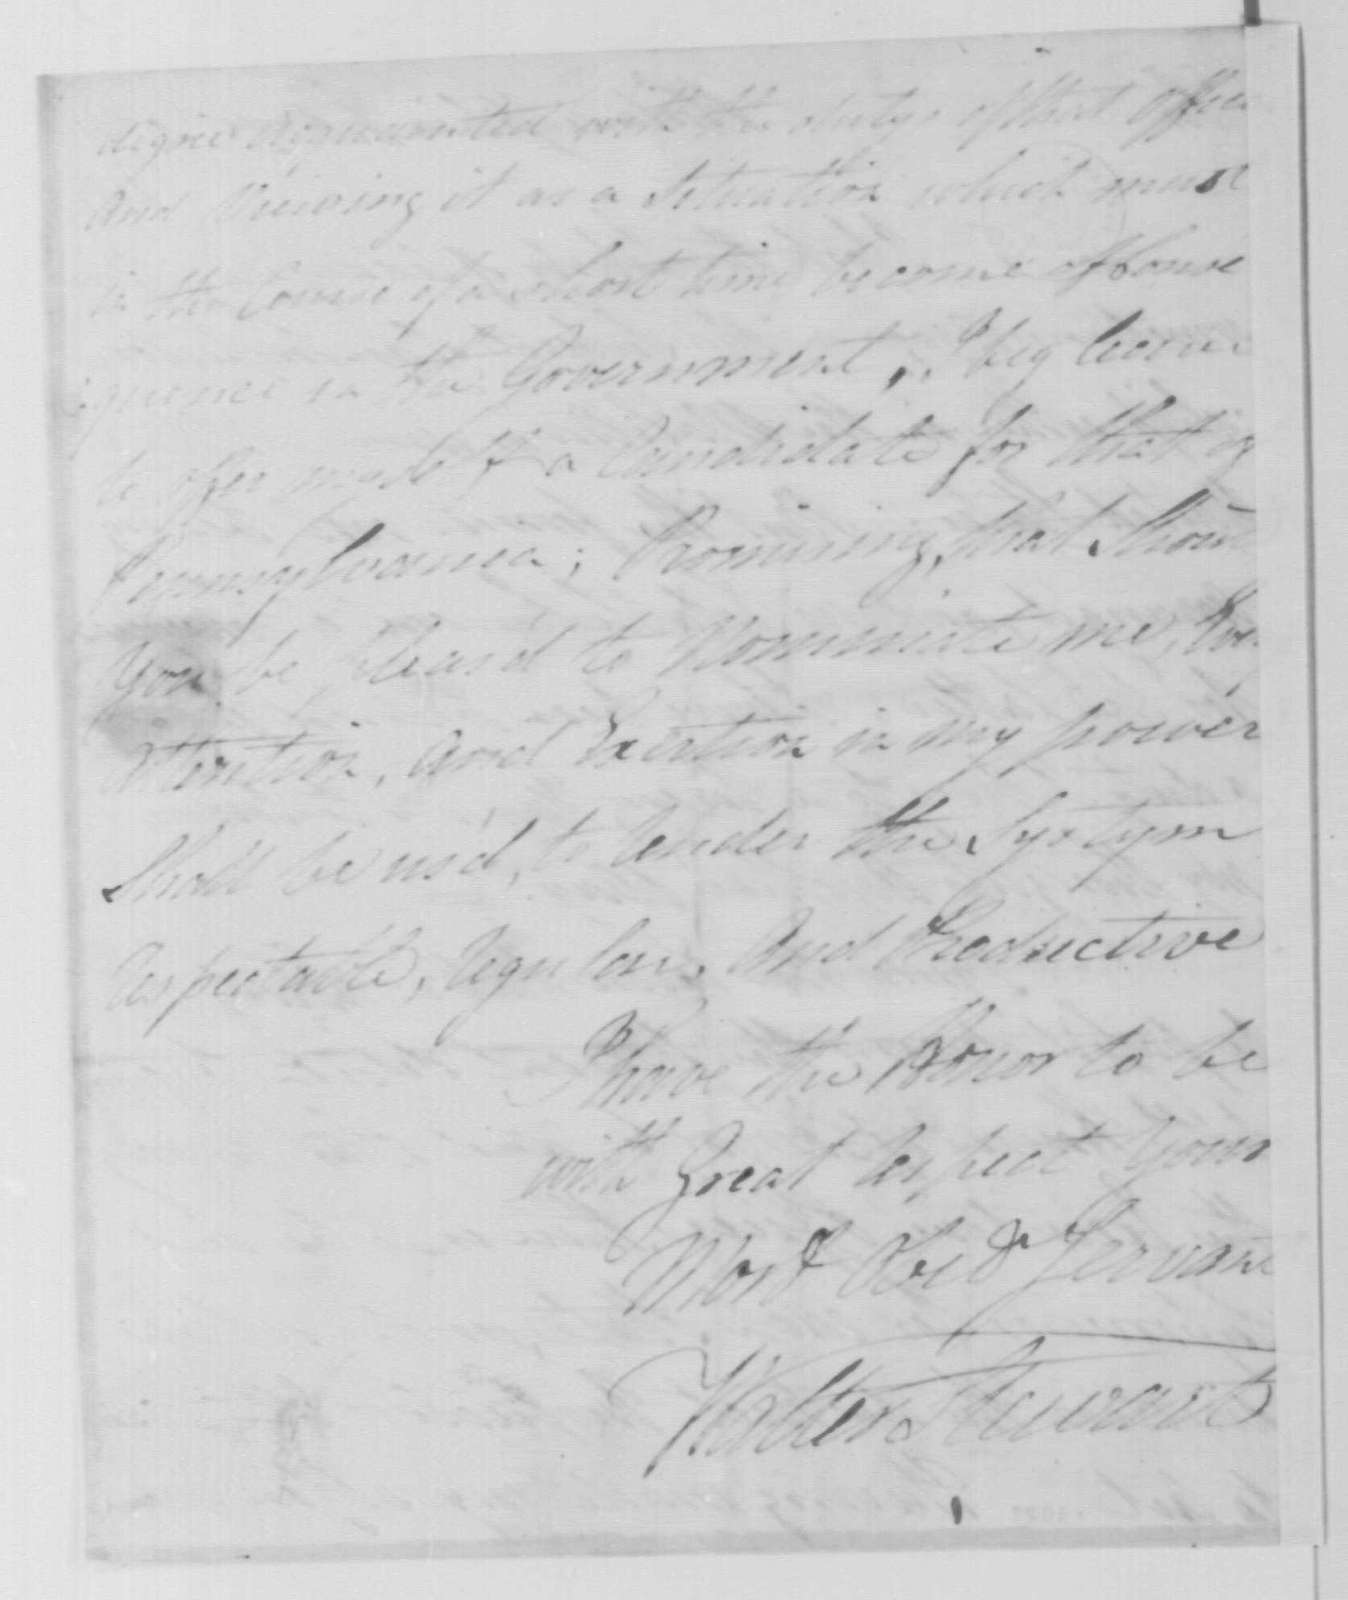 George Washington Papers, Series 7, Applications for Office, 1789-1796: Walter Stewart